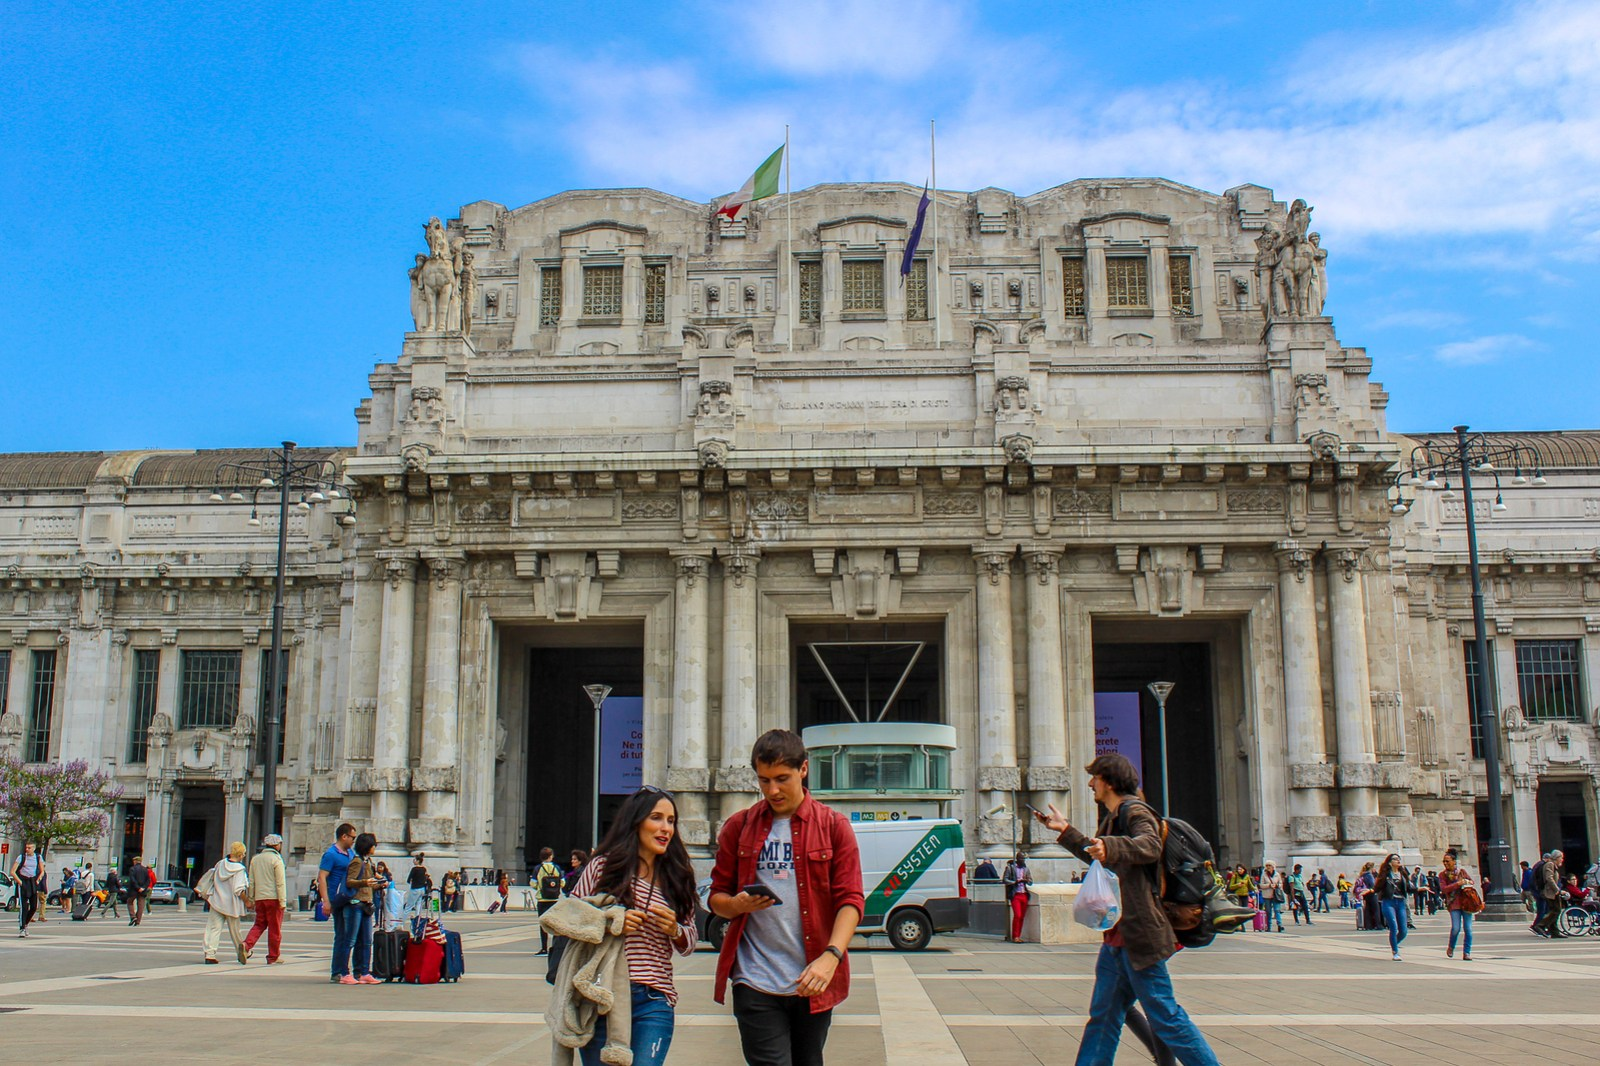 should i visit milan? yes, the train station makes it easy